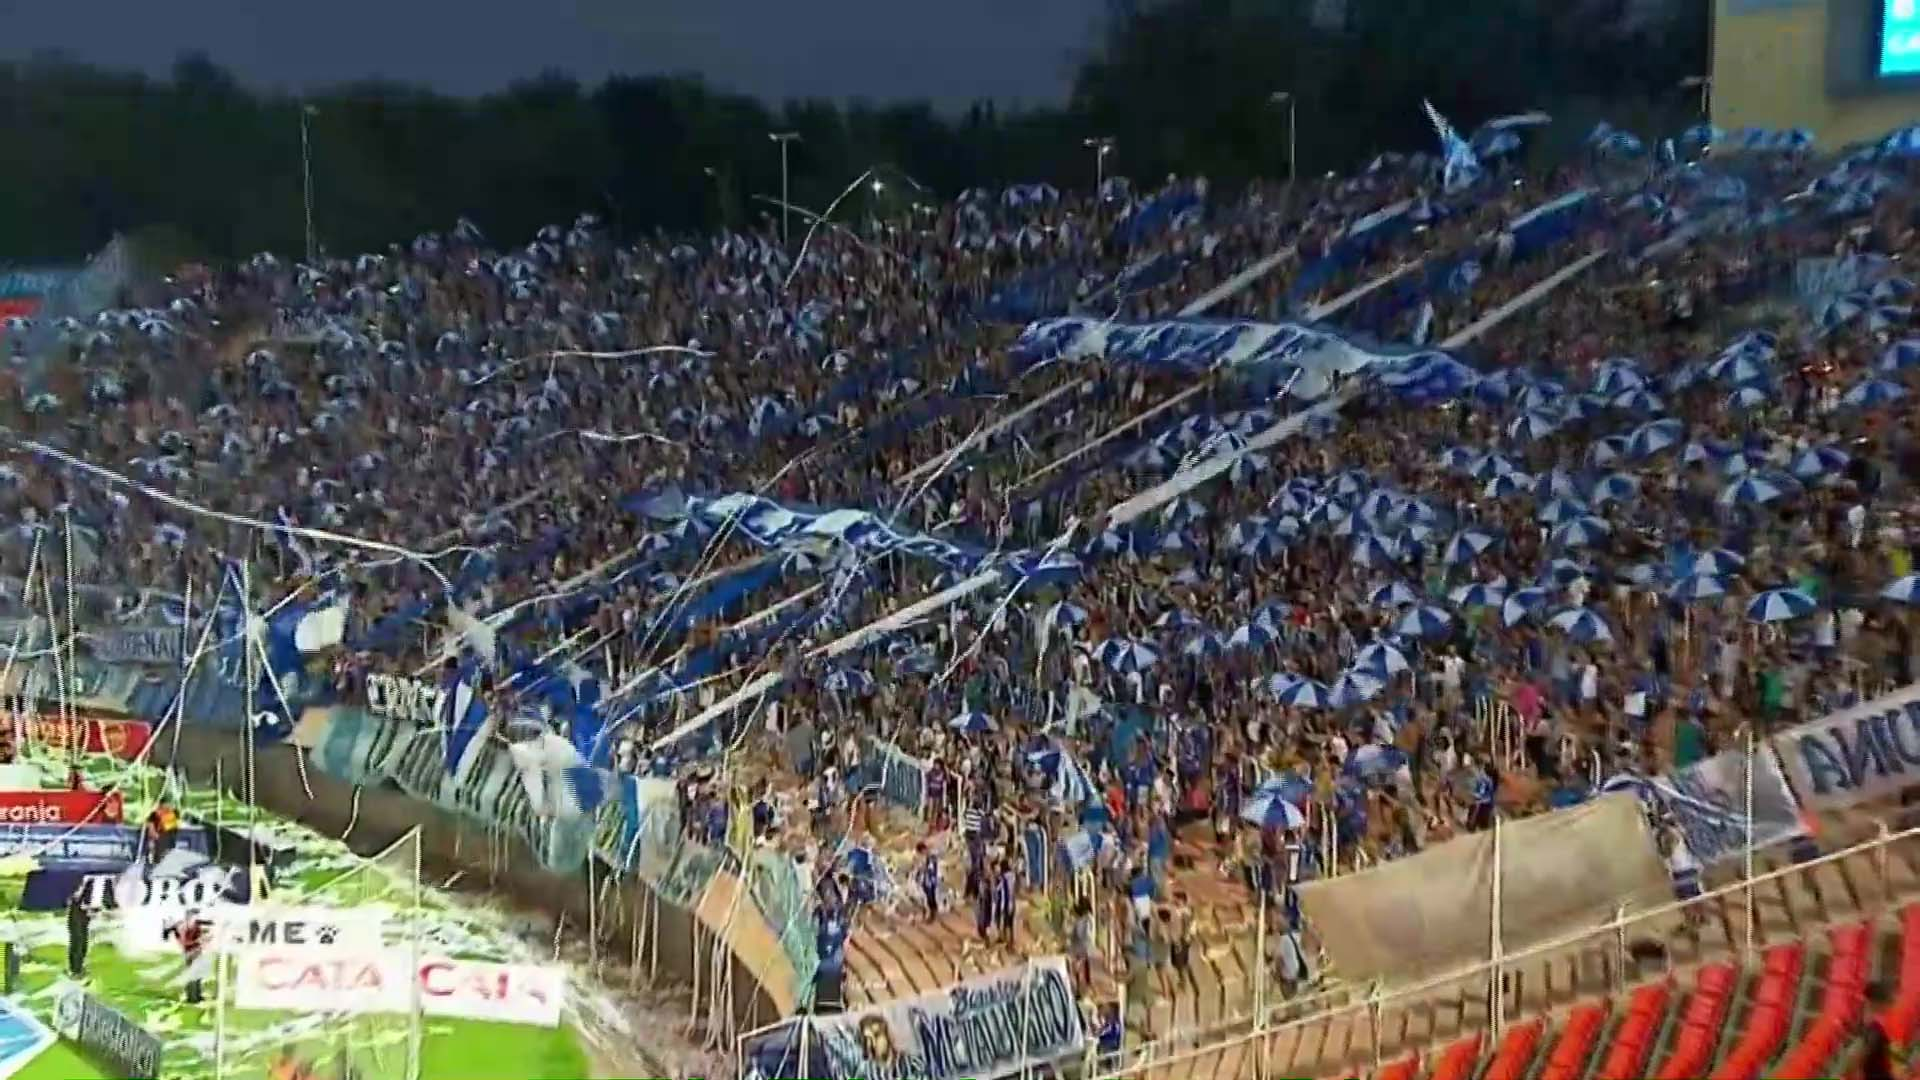 Fútbol Superliga Godoy Cruz(Mdza) 0 – River 4